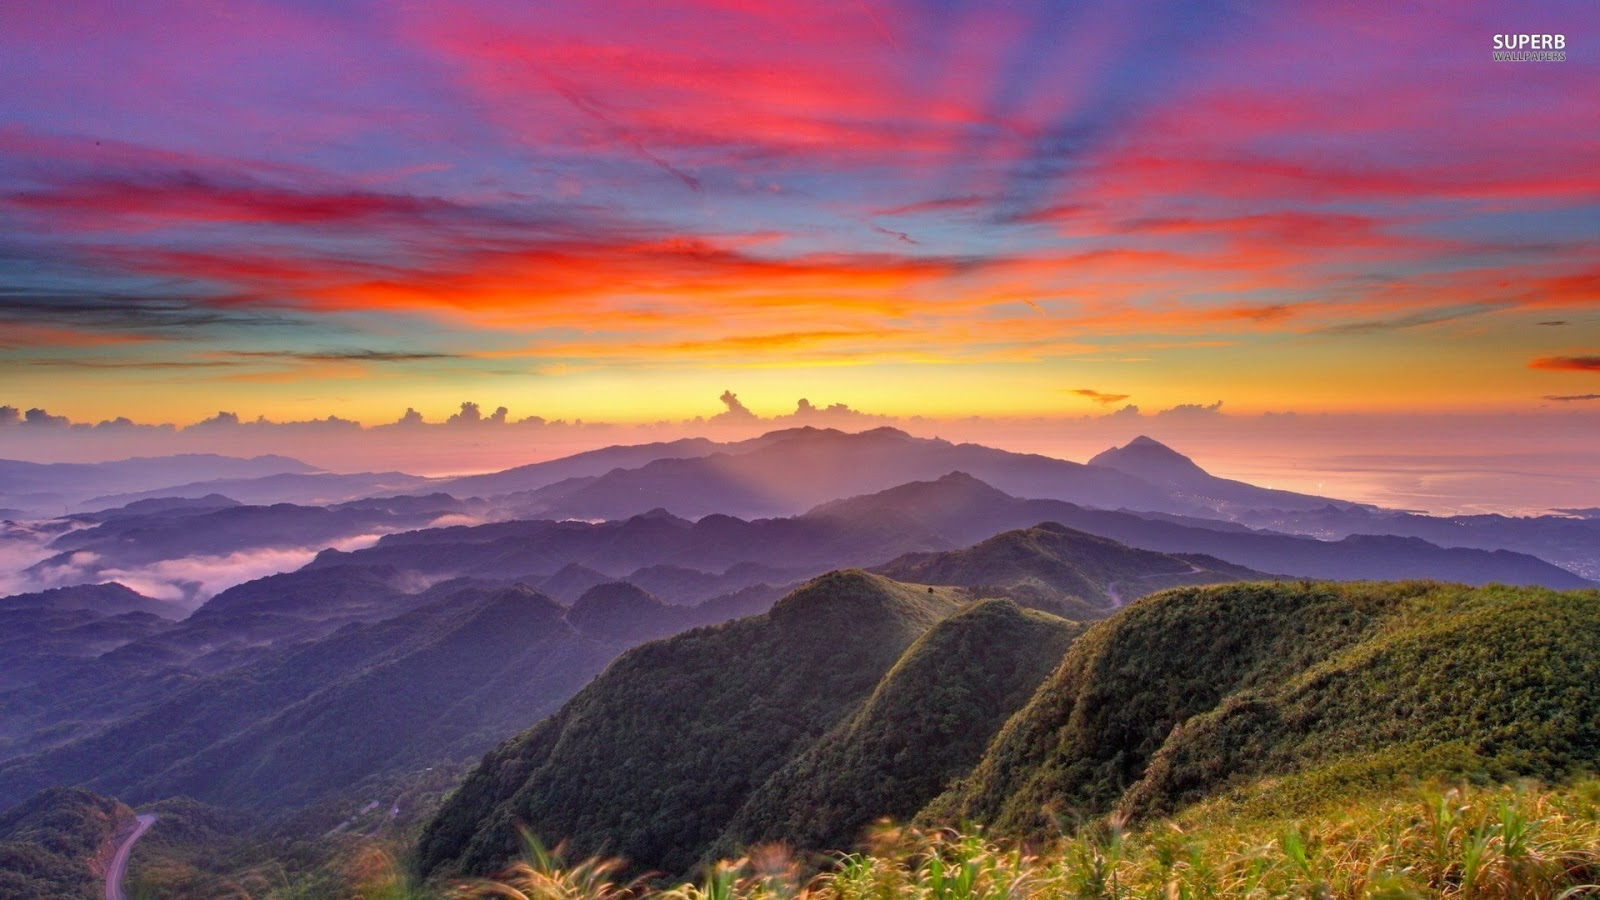 colorful-mountain-sunrise-beautiful-nature-images-wallpapers